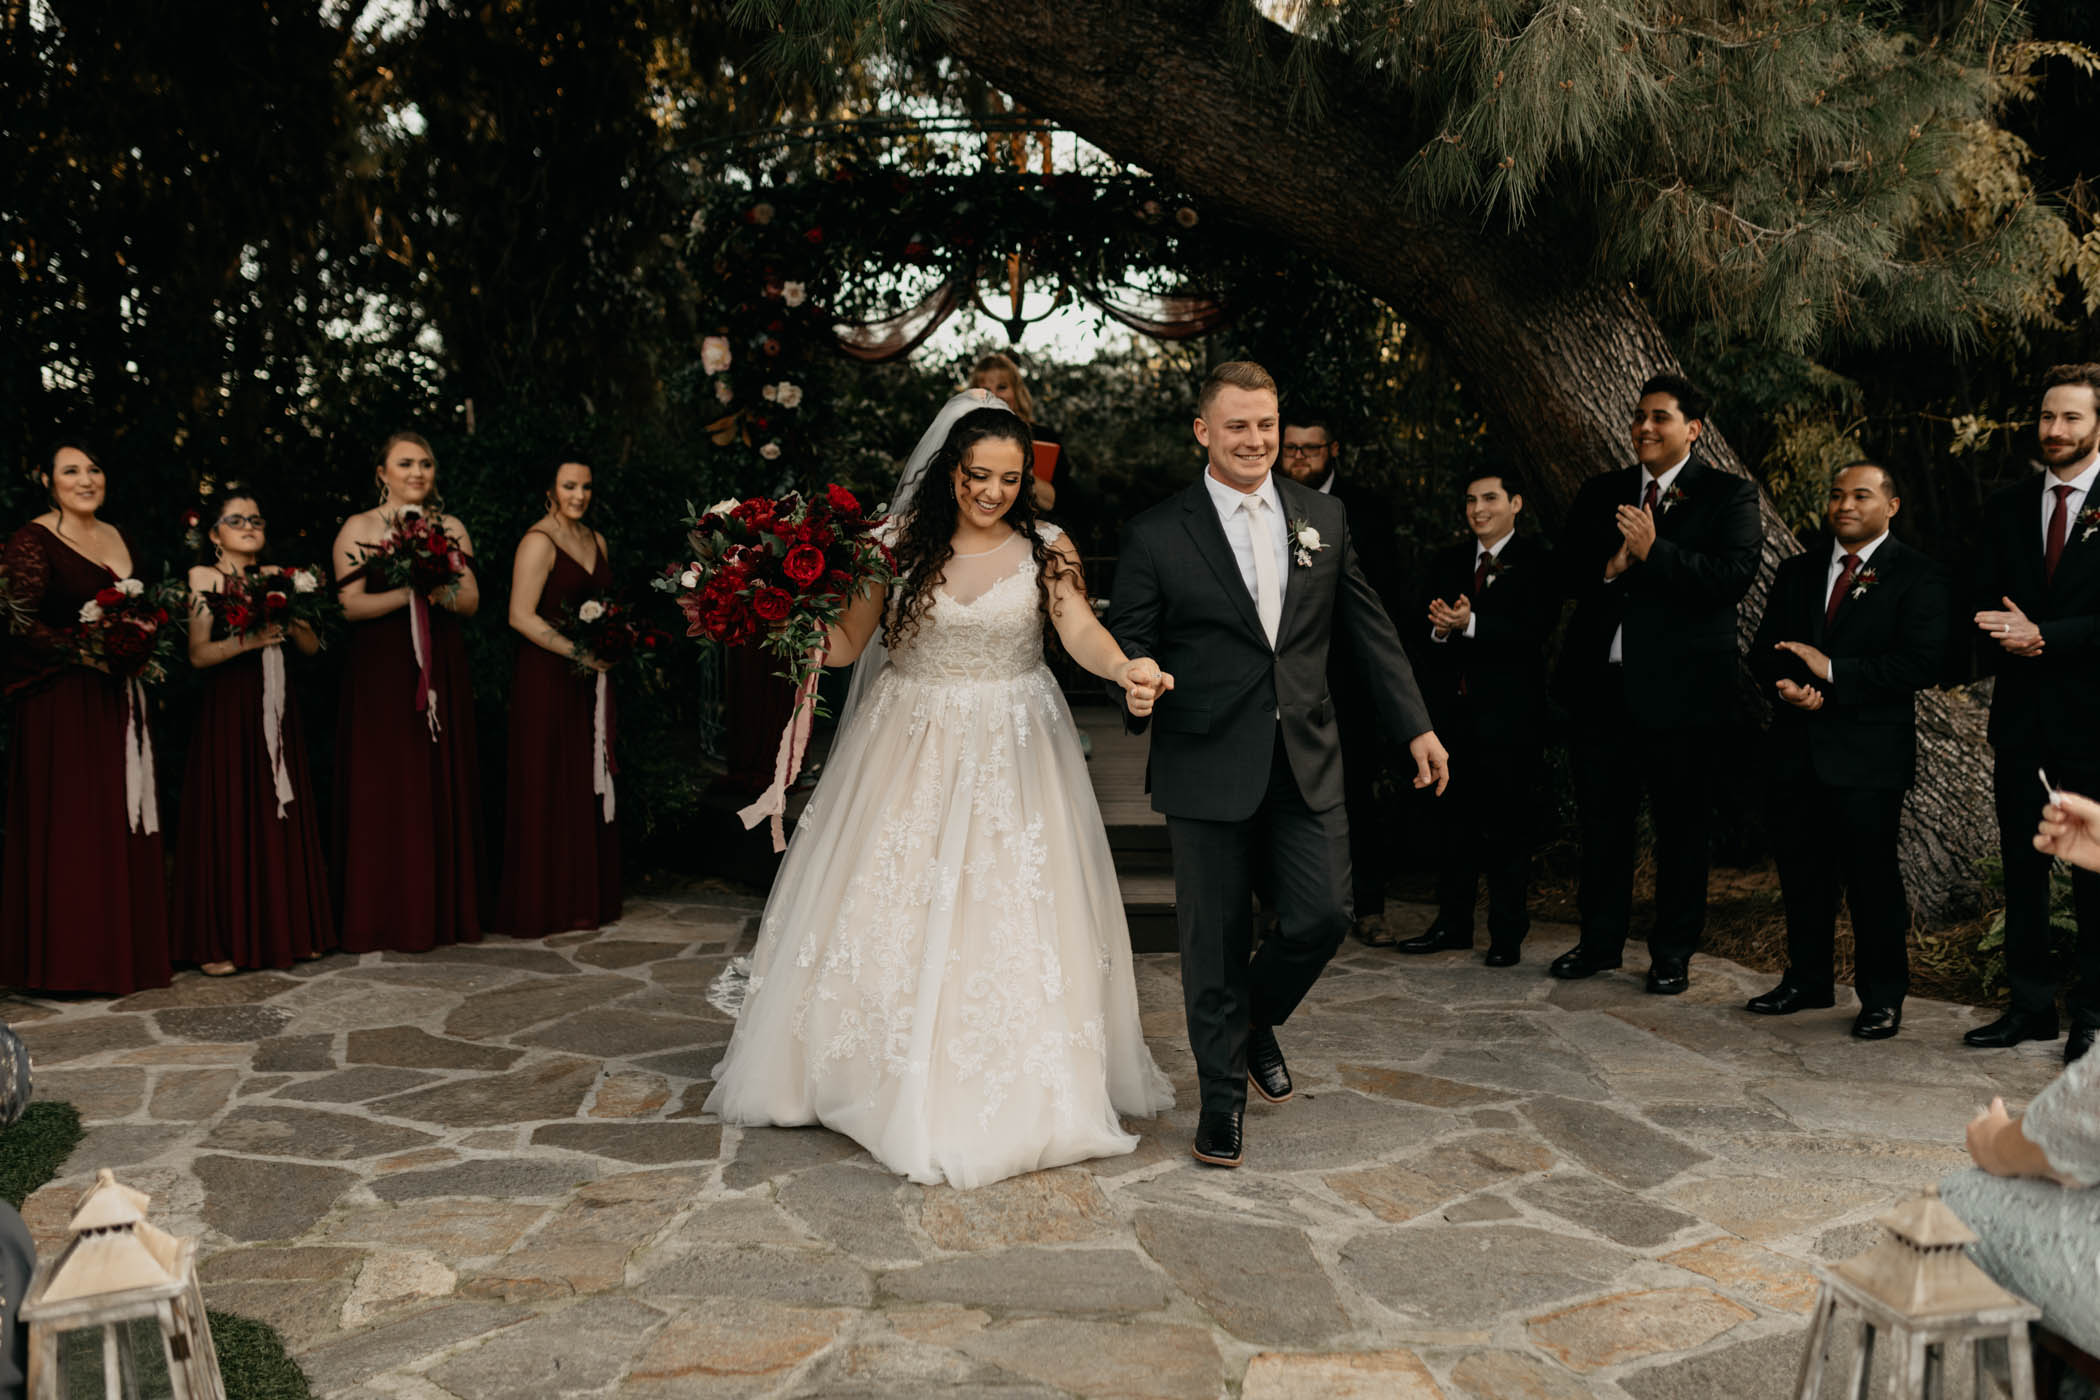 Bride and groom leaving their wedding ceremony in California smiling